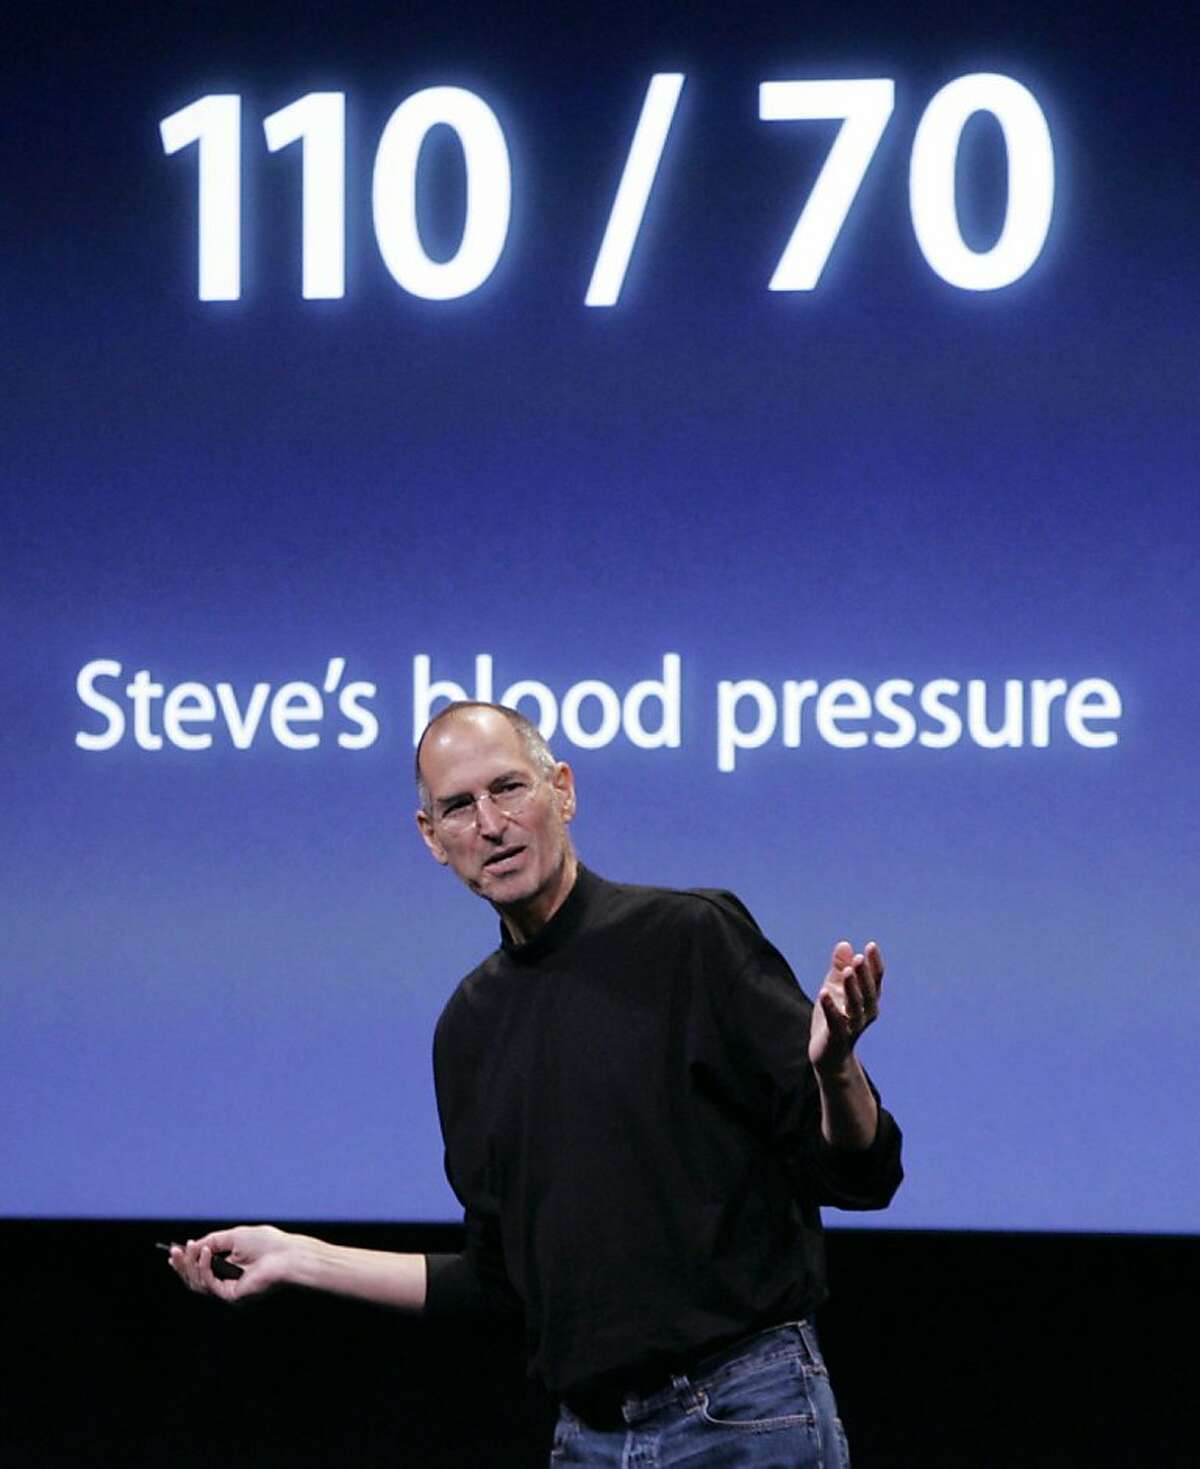 In this Oct. 14, 2008 file photo, Apple Inc. CEO Steve Jobs jokes about his health during a product announcement at Apple headquarters in Cupertino, Calif. Legendary CEOs like Jobs are an incredibly tough act to follow. But companies can lessen the letdown that almost inevitably occurs after losing someone like Jobs by drawing up a logical succession plan that prepares an heir apparent to fill the void.